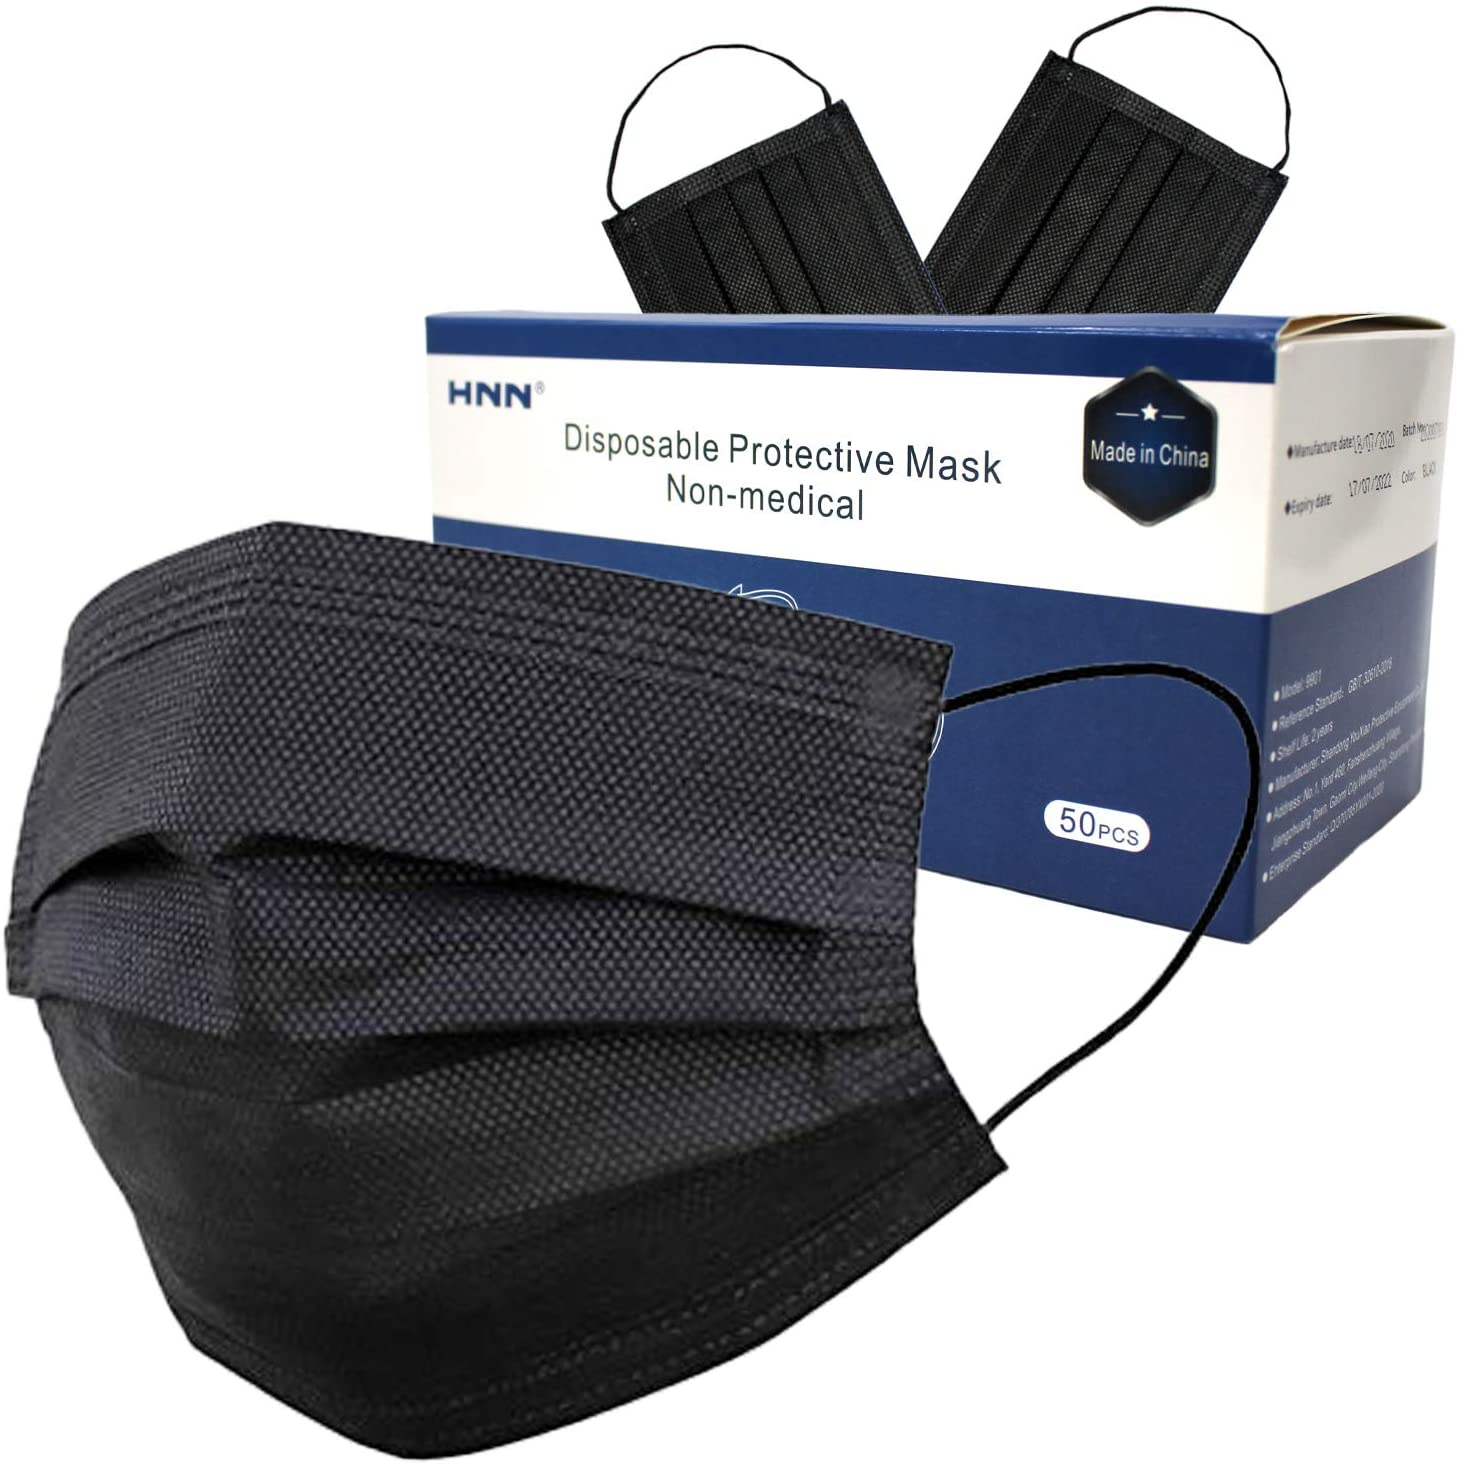 50/100/150 PC - Adult Skin-Friendly Disposable Protective Face Masks, Single-Use Indoor & Outdoor, Office, School (50 PC, Black)